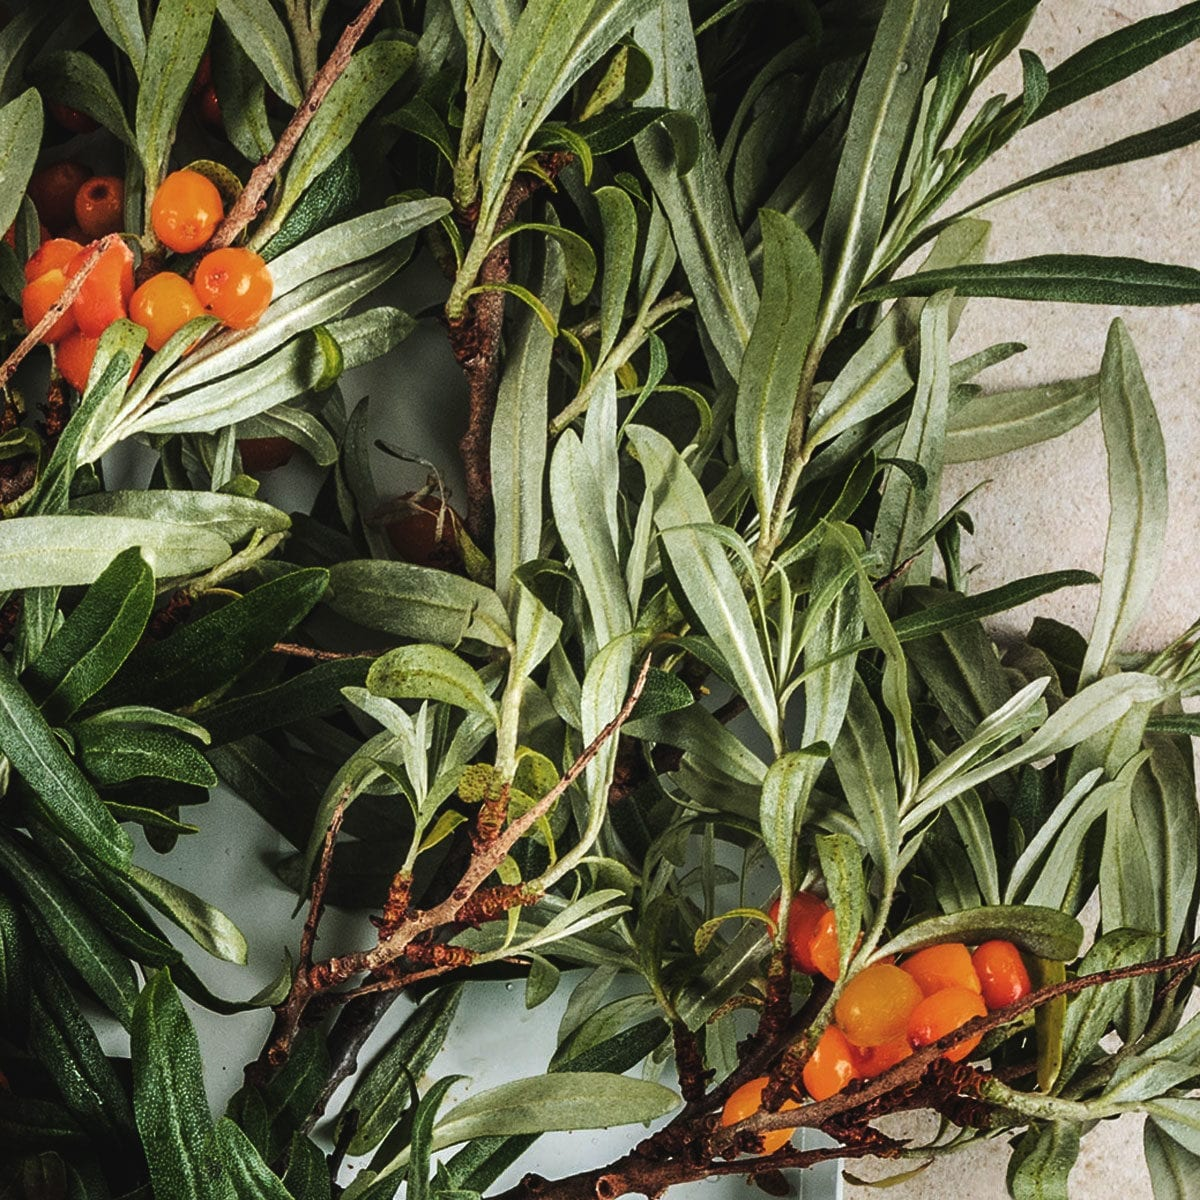 LUMI Kaamos scent features sea buckthorn